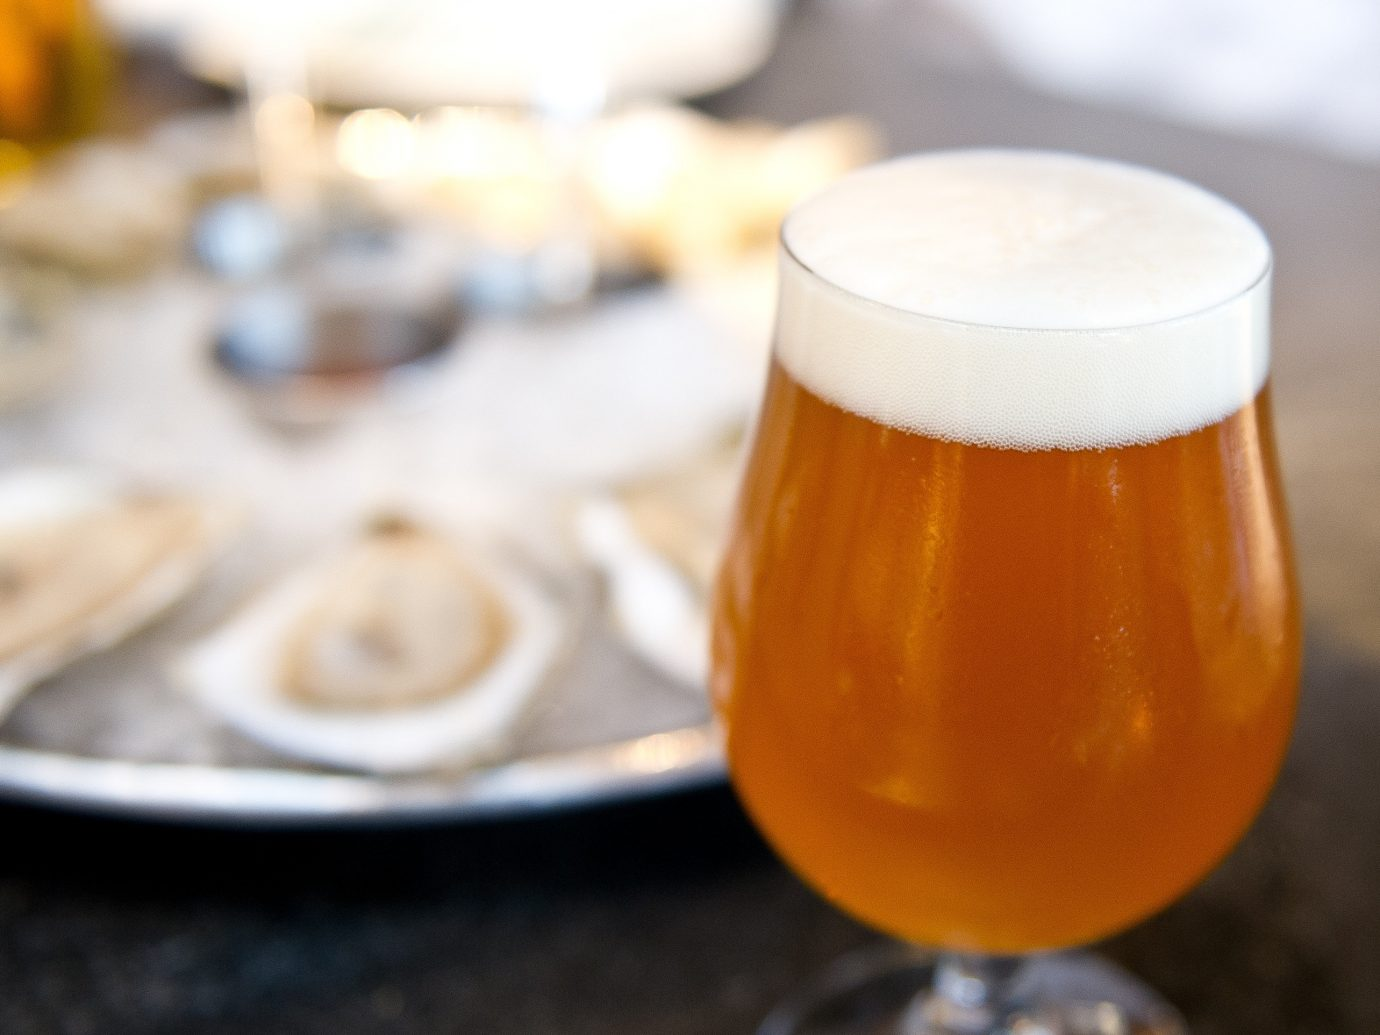 Beer next to a platter of oysters